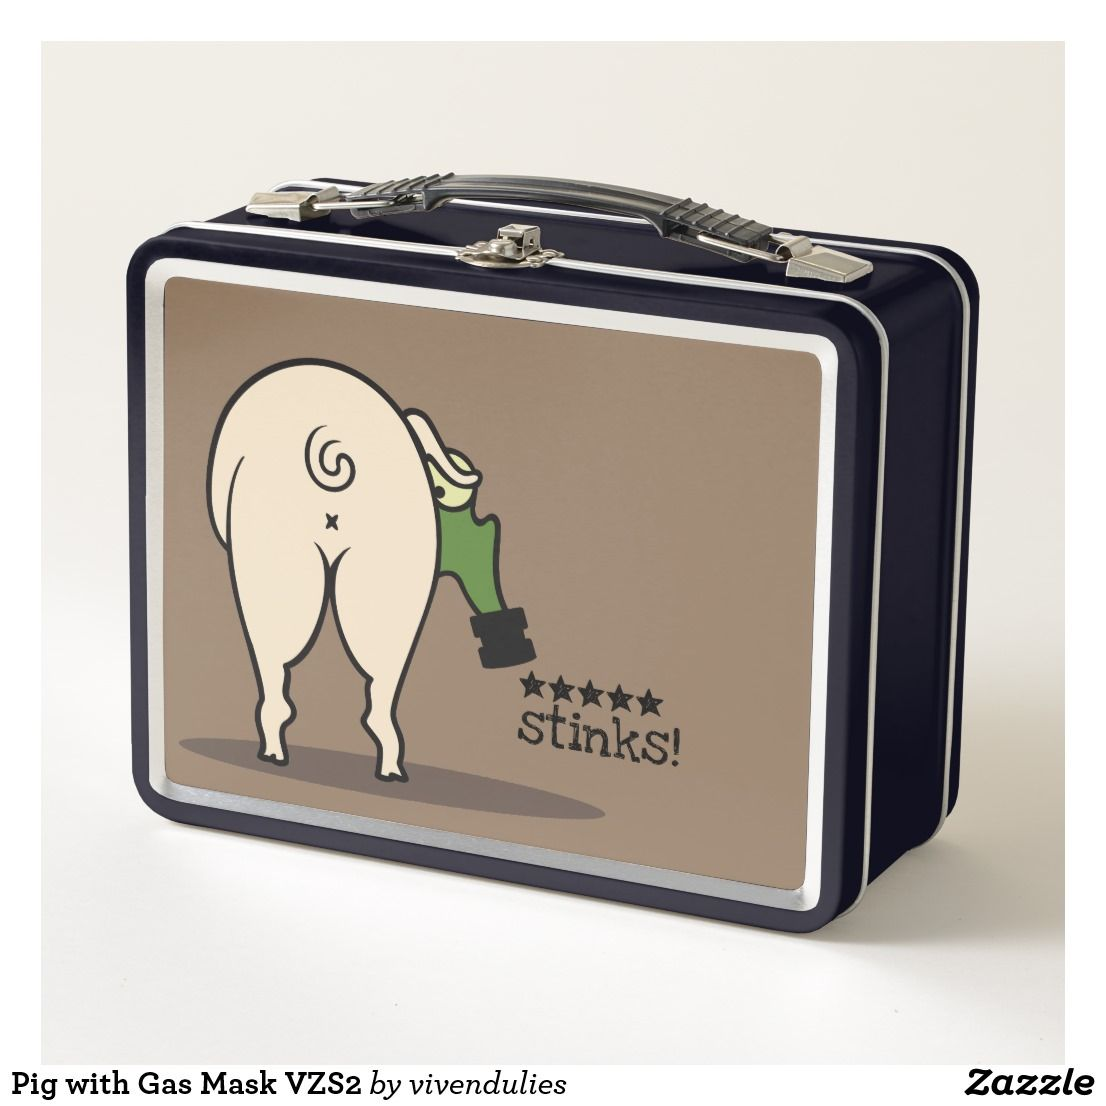 Pig with Gas Mask VZS2 Metal Lunch Box | Zazzle com | Metal